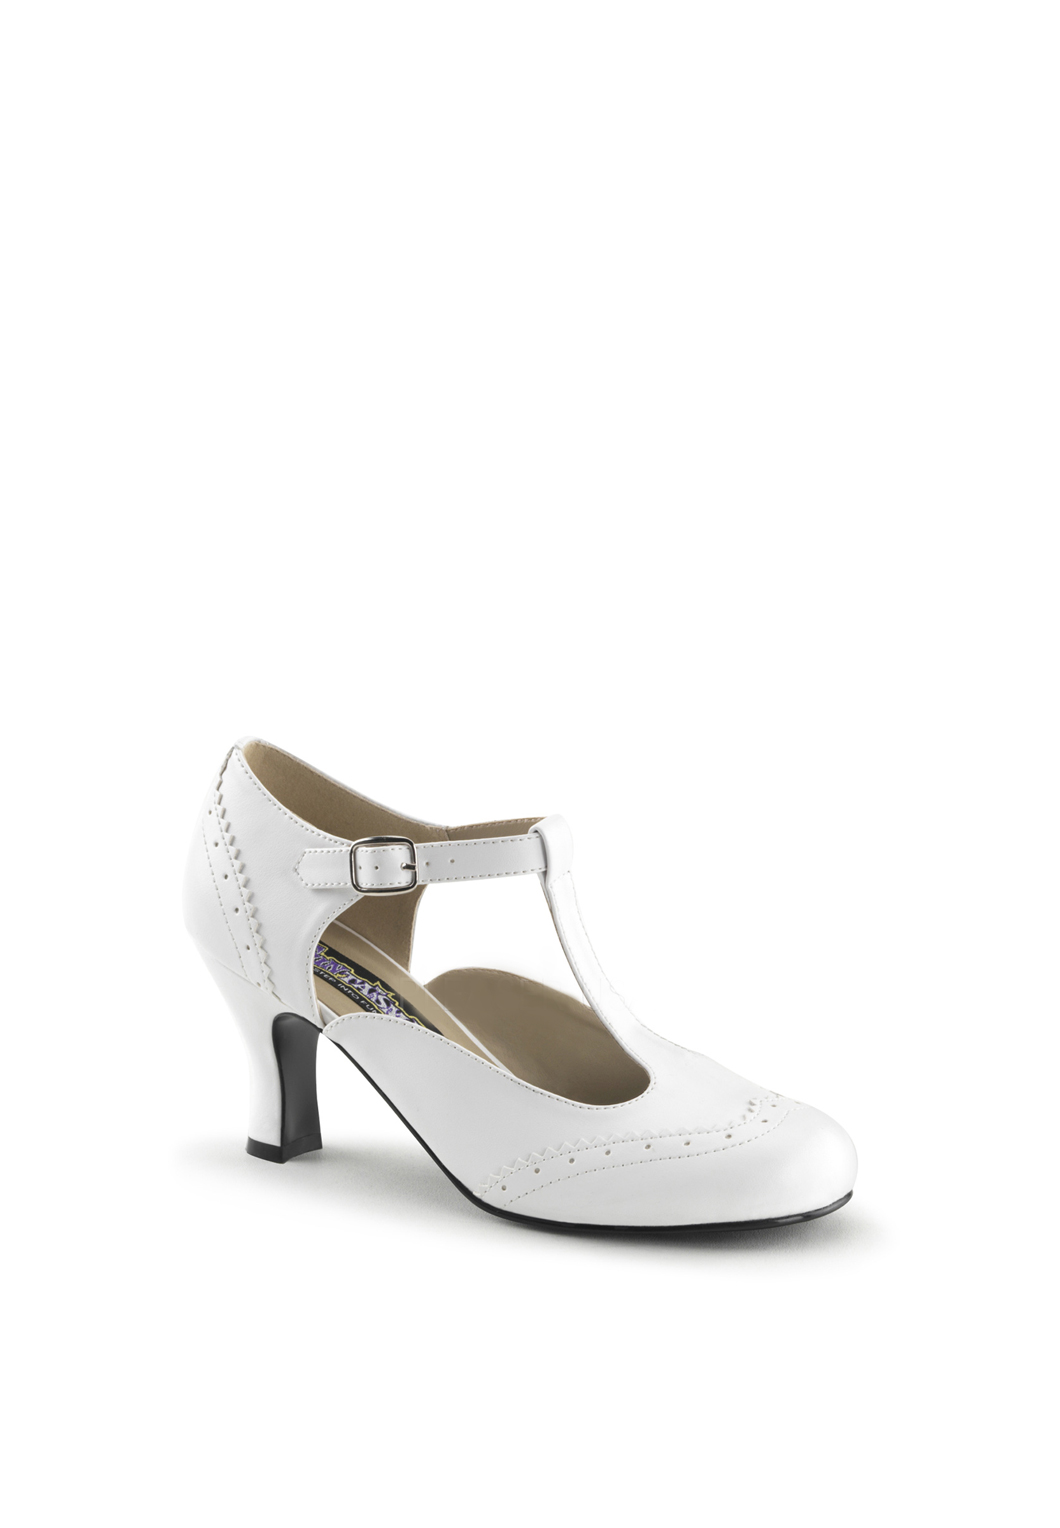 White Flapper Styled Shoe